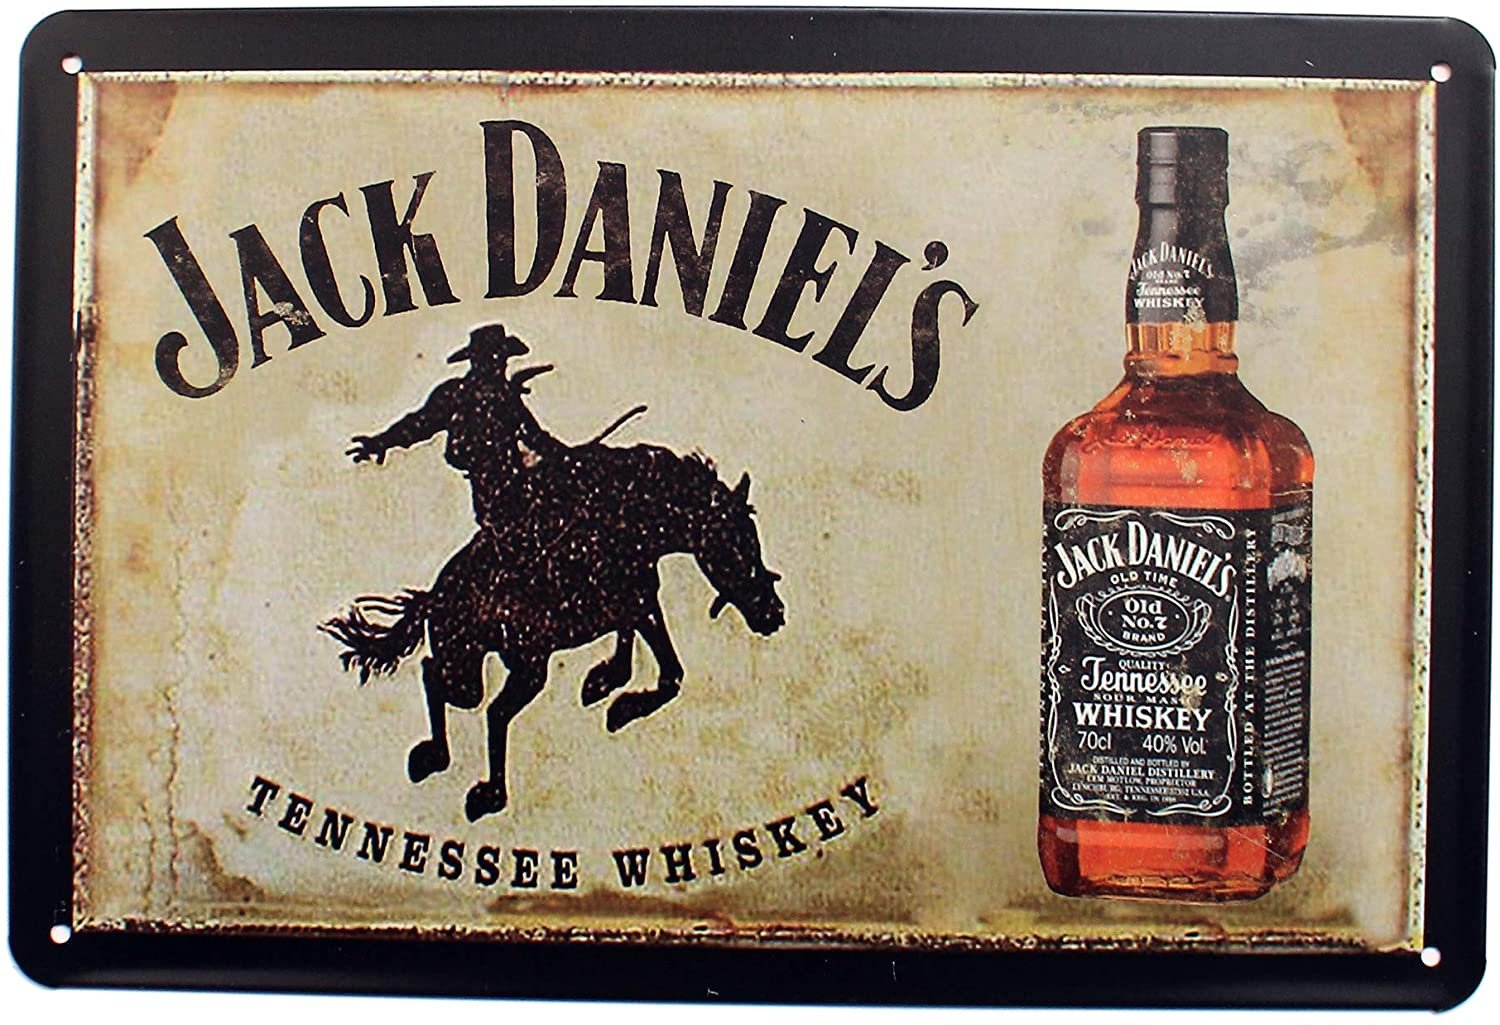 K&H Jack Daniels Whiskey Retro Metal Tin Sign Posters Café Bar Diner Pub Restaurant Wall Decor 12X8-Inch